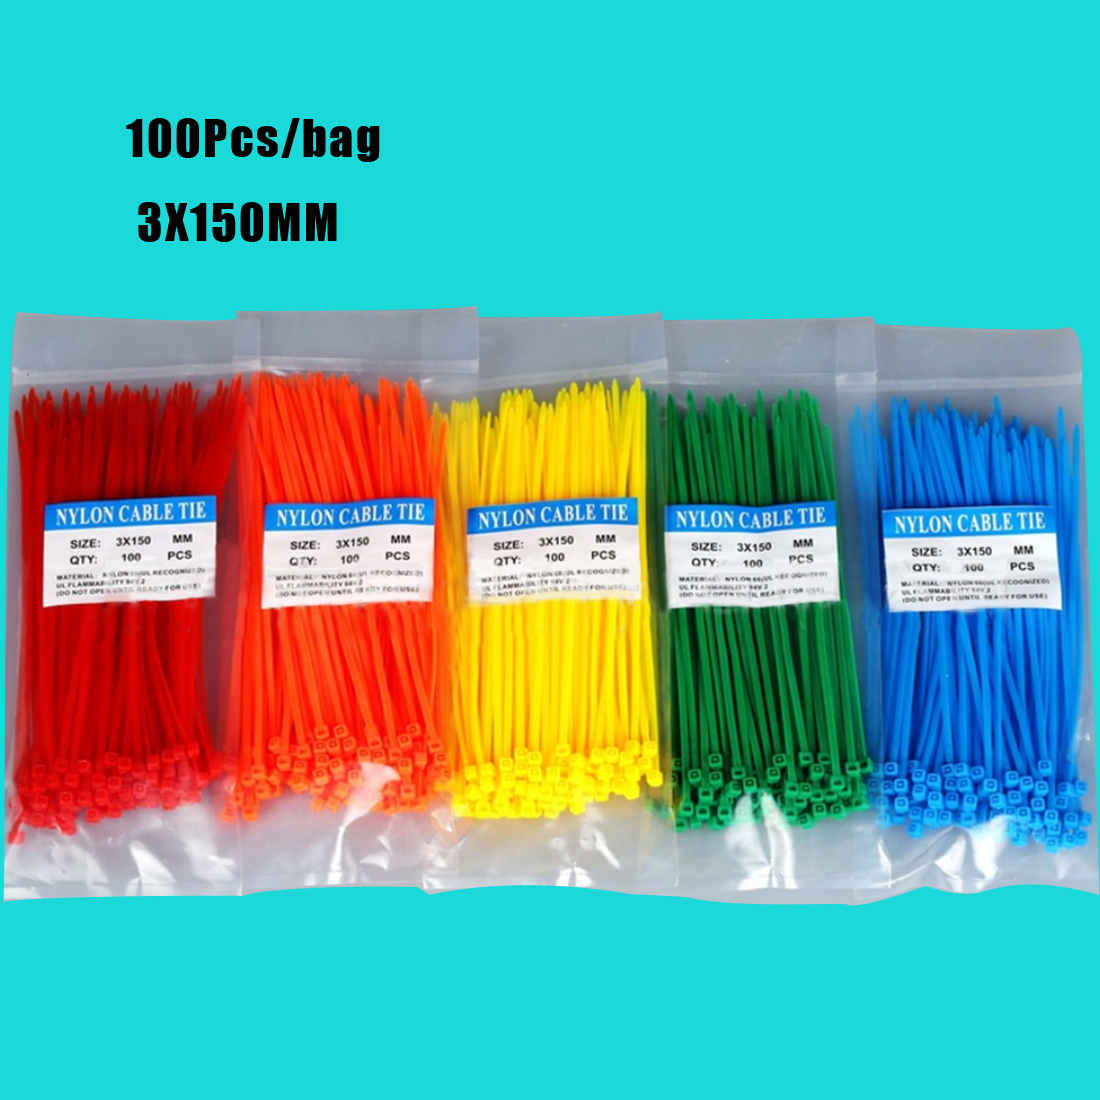 5 color Plastic Self locking Nylon Cable Ties  2.5x200mm 100Pcs  Zip Tie  Wire Binding Wrap Straps5 color Plastic Self locking Nylon Cable Ties  2.5x200mm 100Pcs  Zip Tie  Wire Binding Wrap Straps